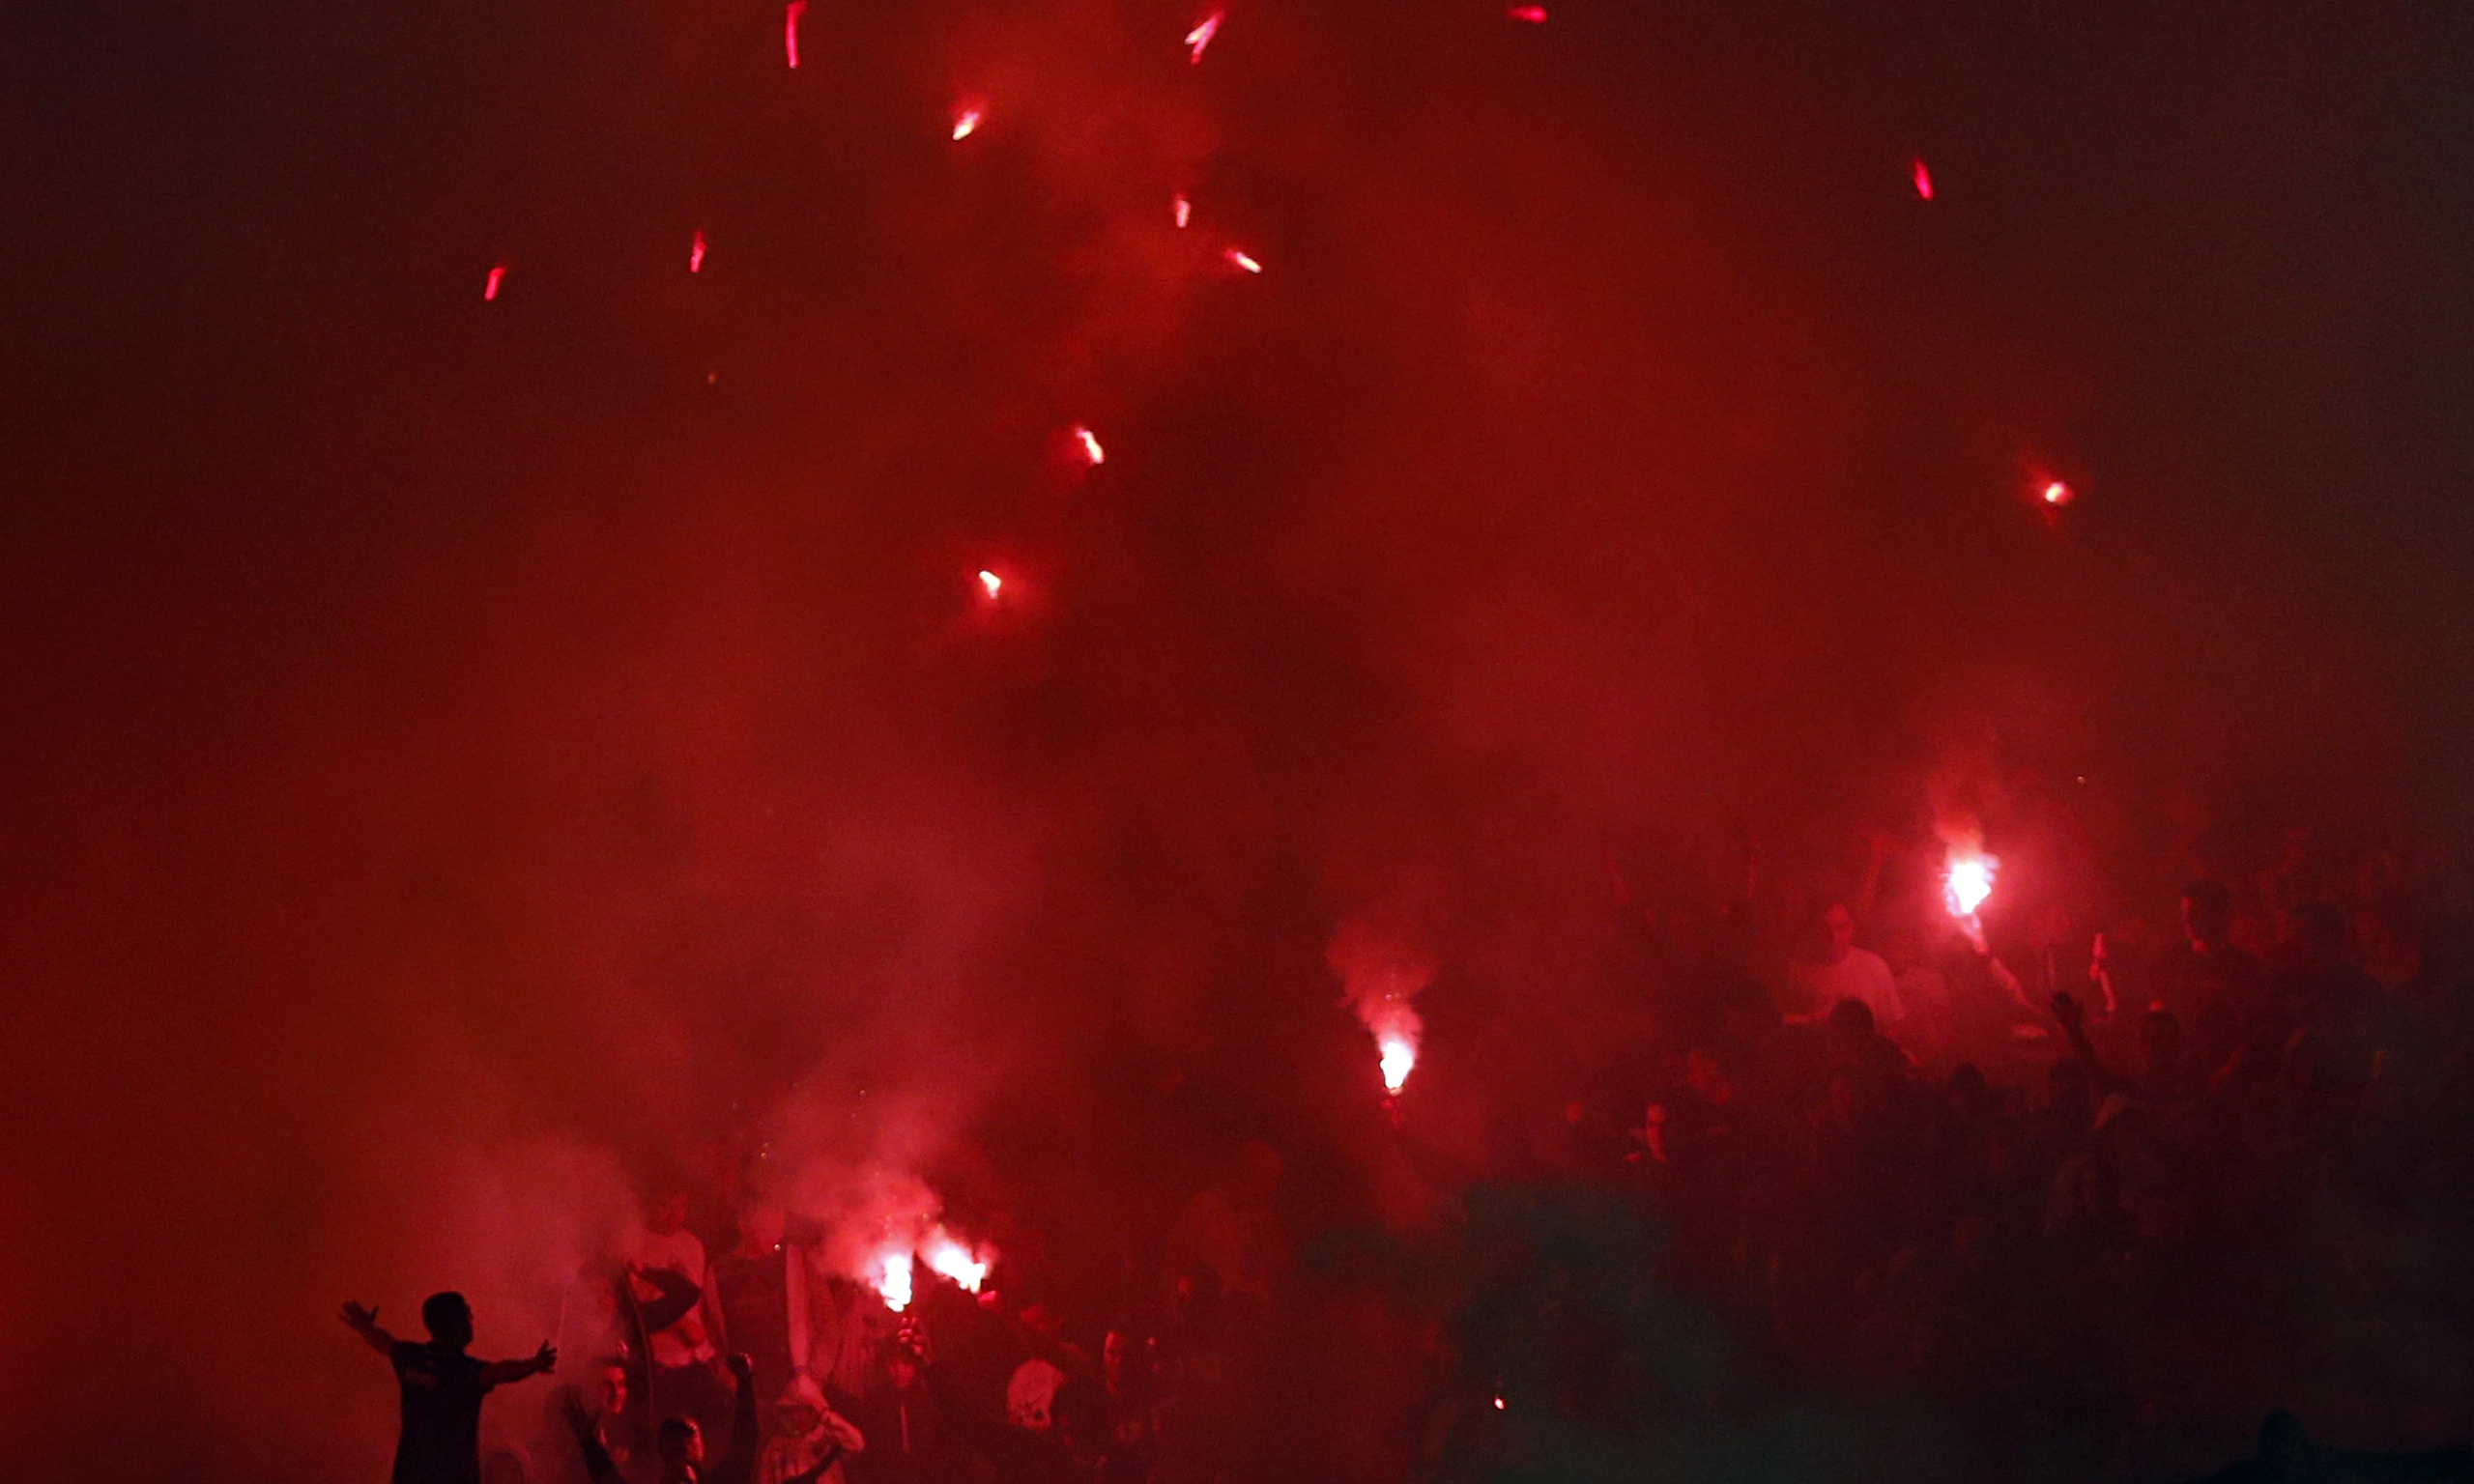 red flare star - photo #4